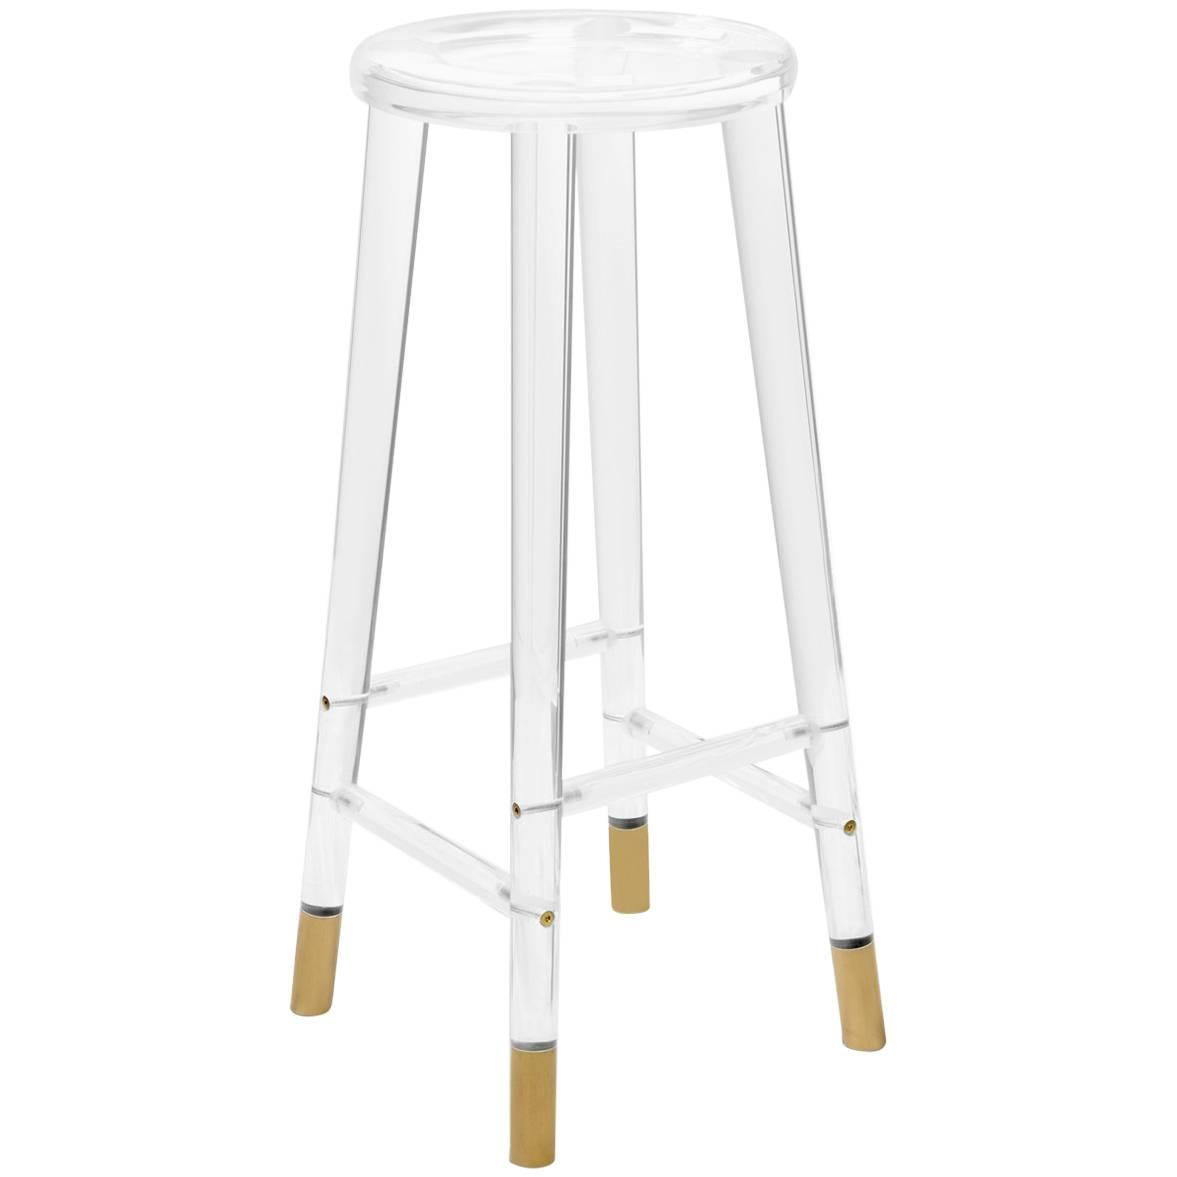 Mid-Century Modern Style Lucite and Brass Sleek and Elegant Bar Stool